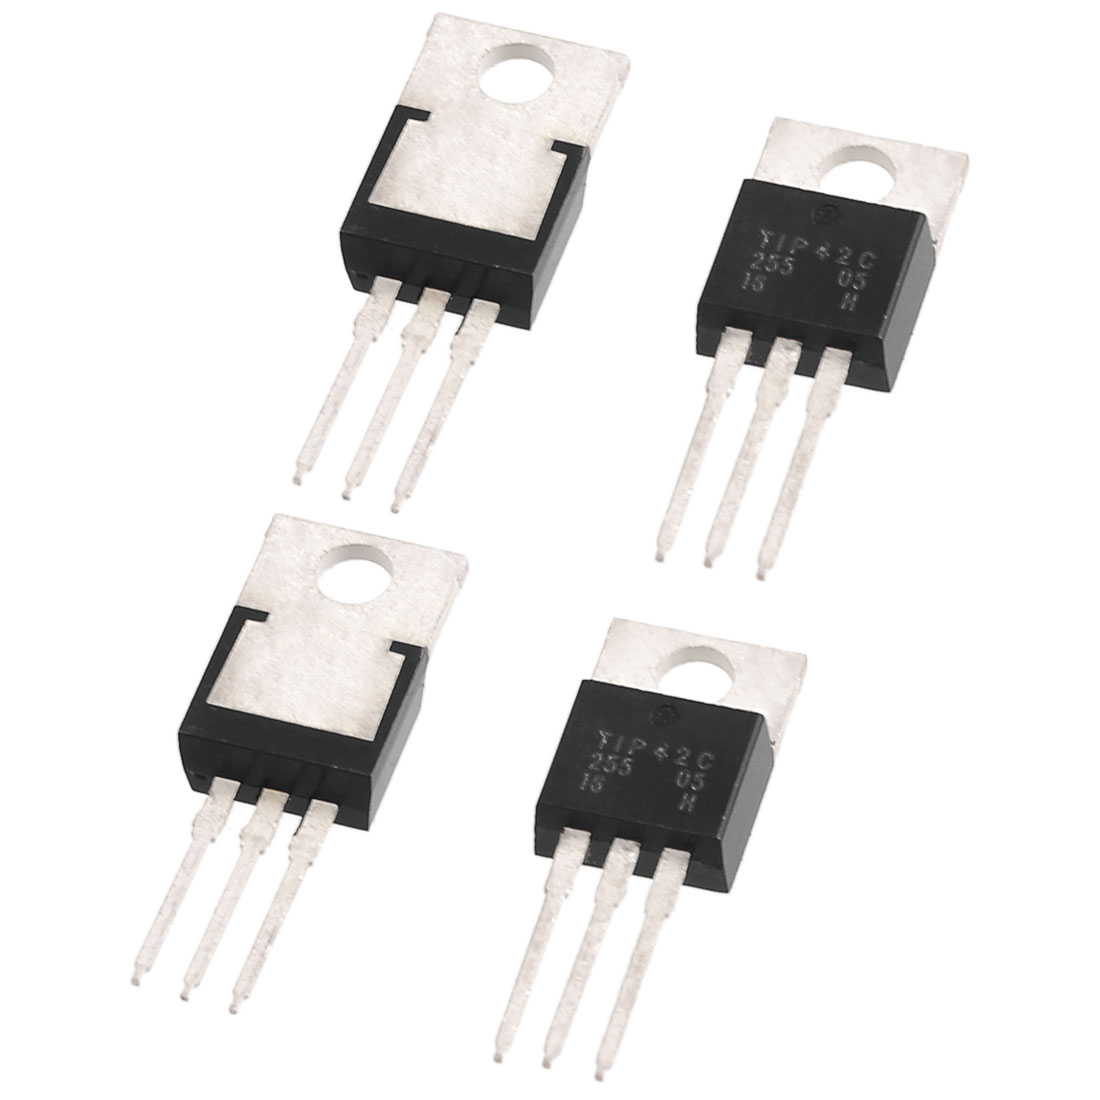 4 Pcs TIP41C NPN TIP42C PNP Audio Power Amplifier Transistor 100V 6A